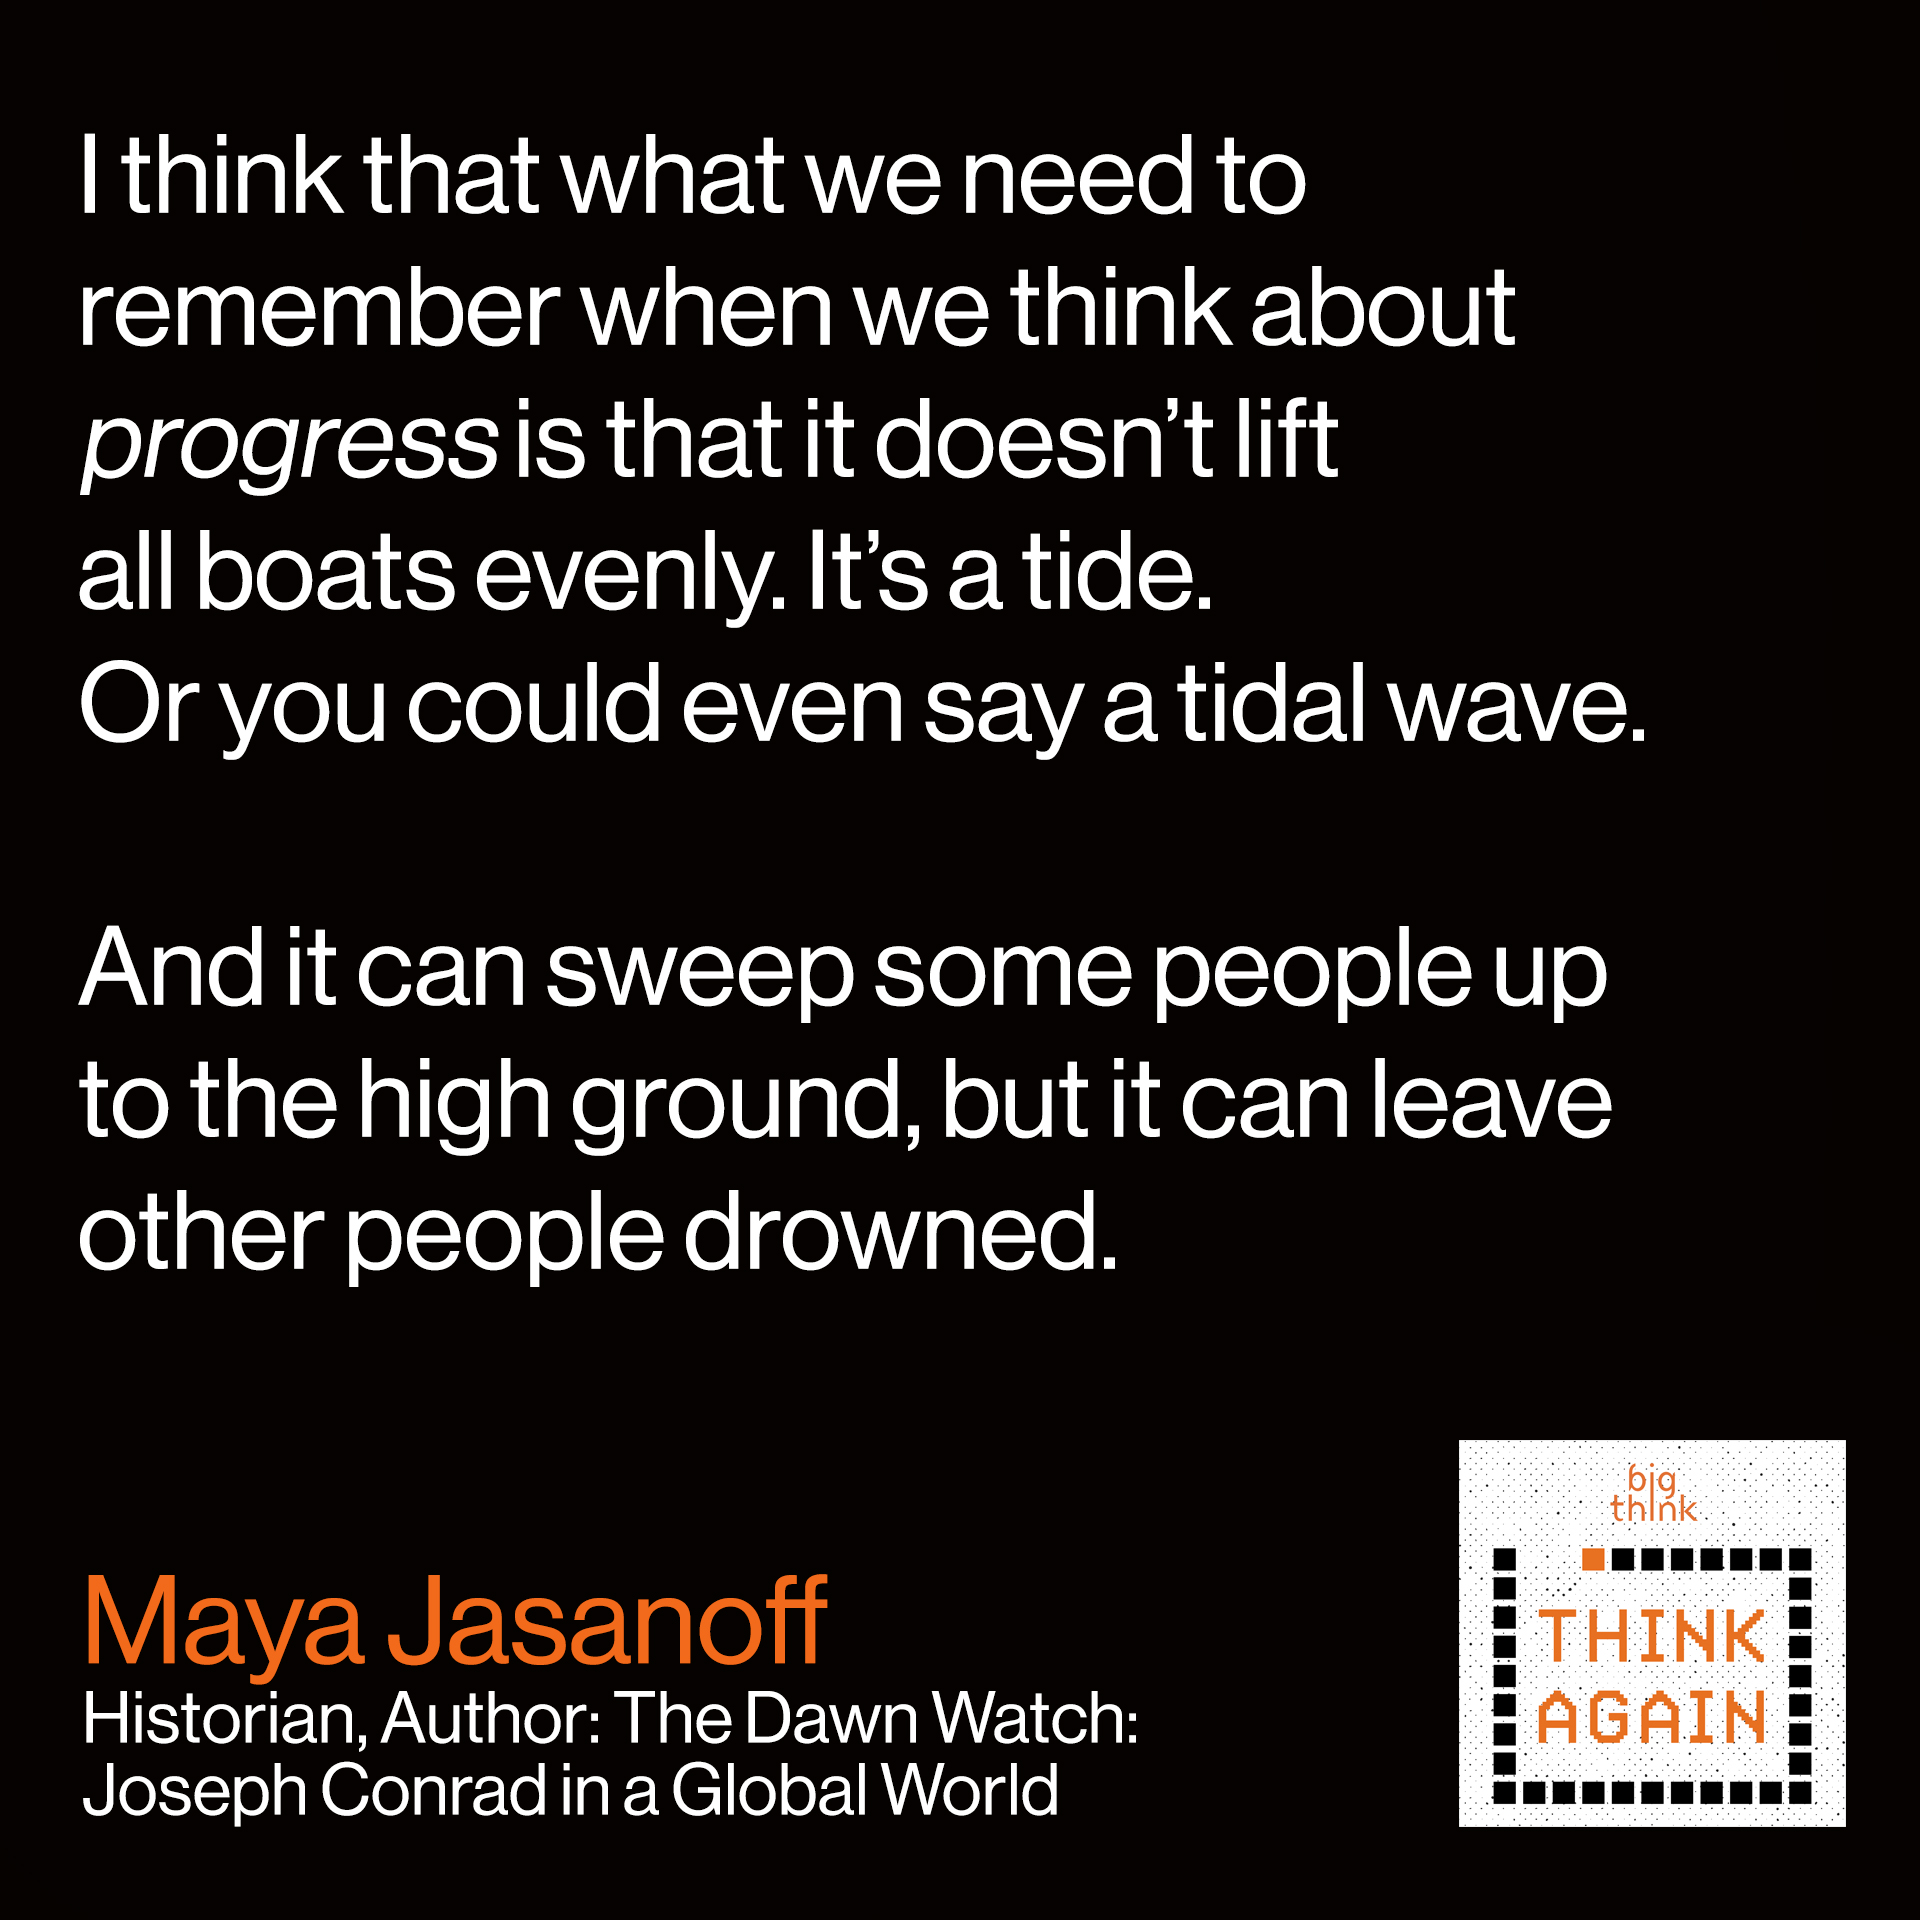 Maya Jasanoff Quote: I think that what we need to  remember when we think about  progress is that it doesn't lift  all boats evenly. It's a tide.  Or you could even say a tidal wave.  And it can sweep some people up  to the high ground but it can leave  other people drowned.